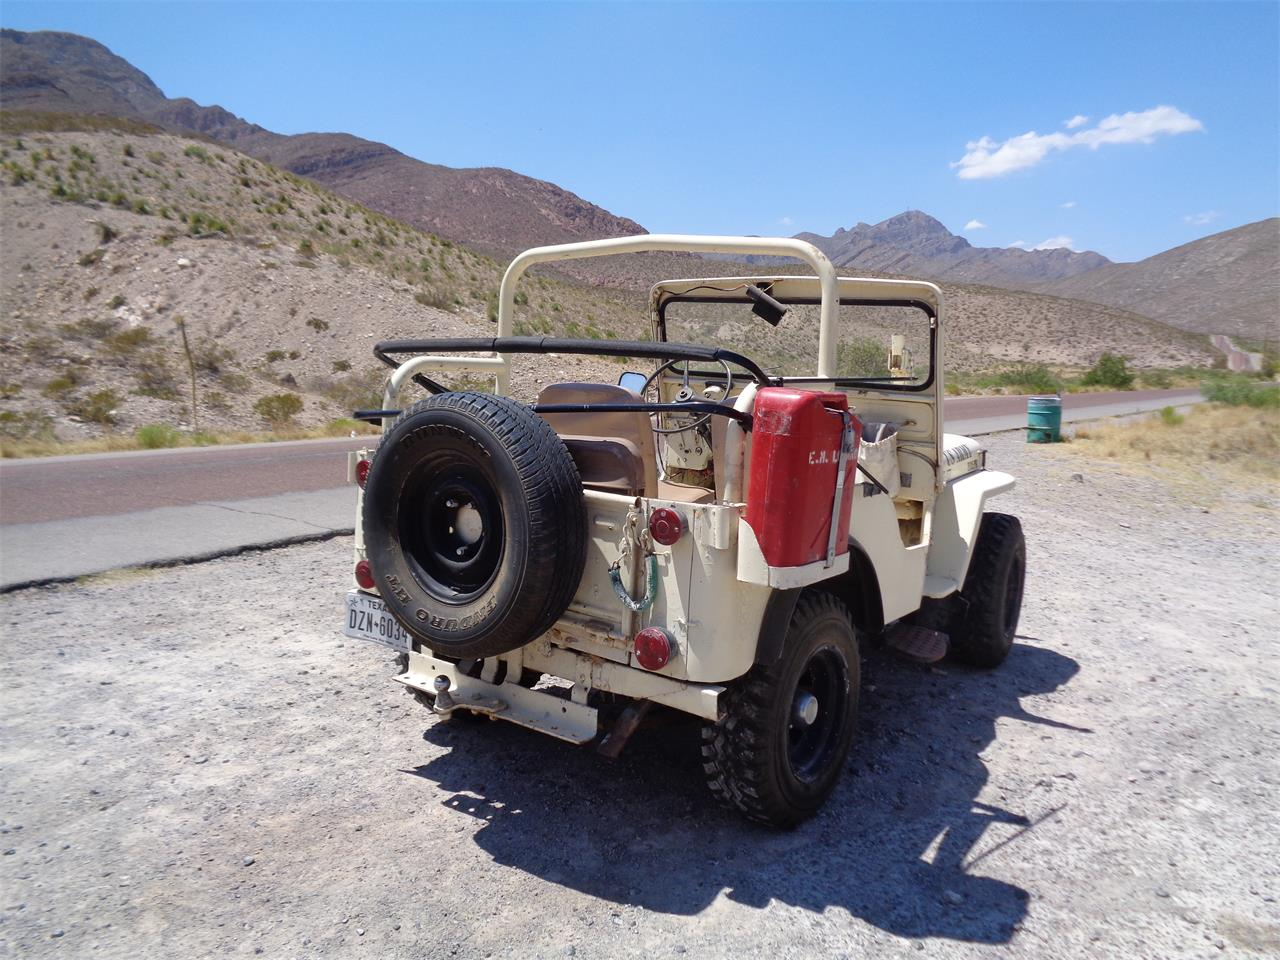 Large Picture of '51 Jeep - $9,000.00 Offered by a Private Seller - Q80U